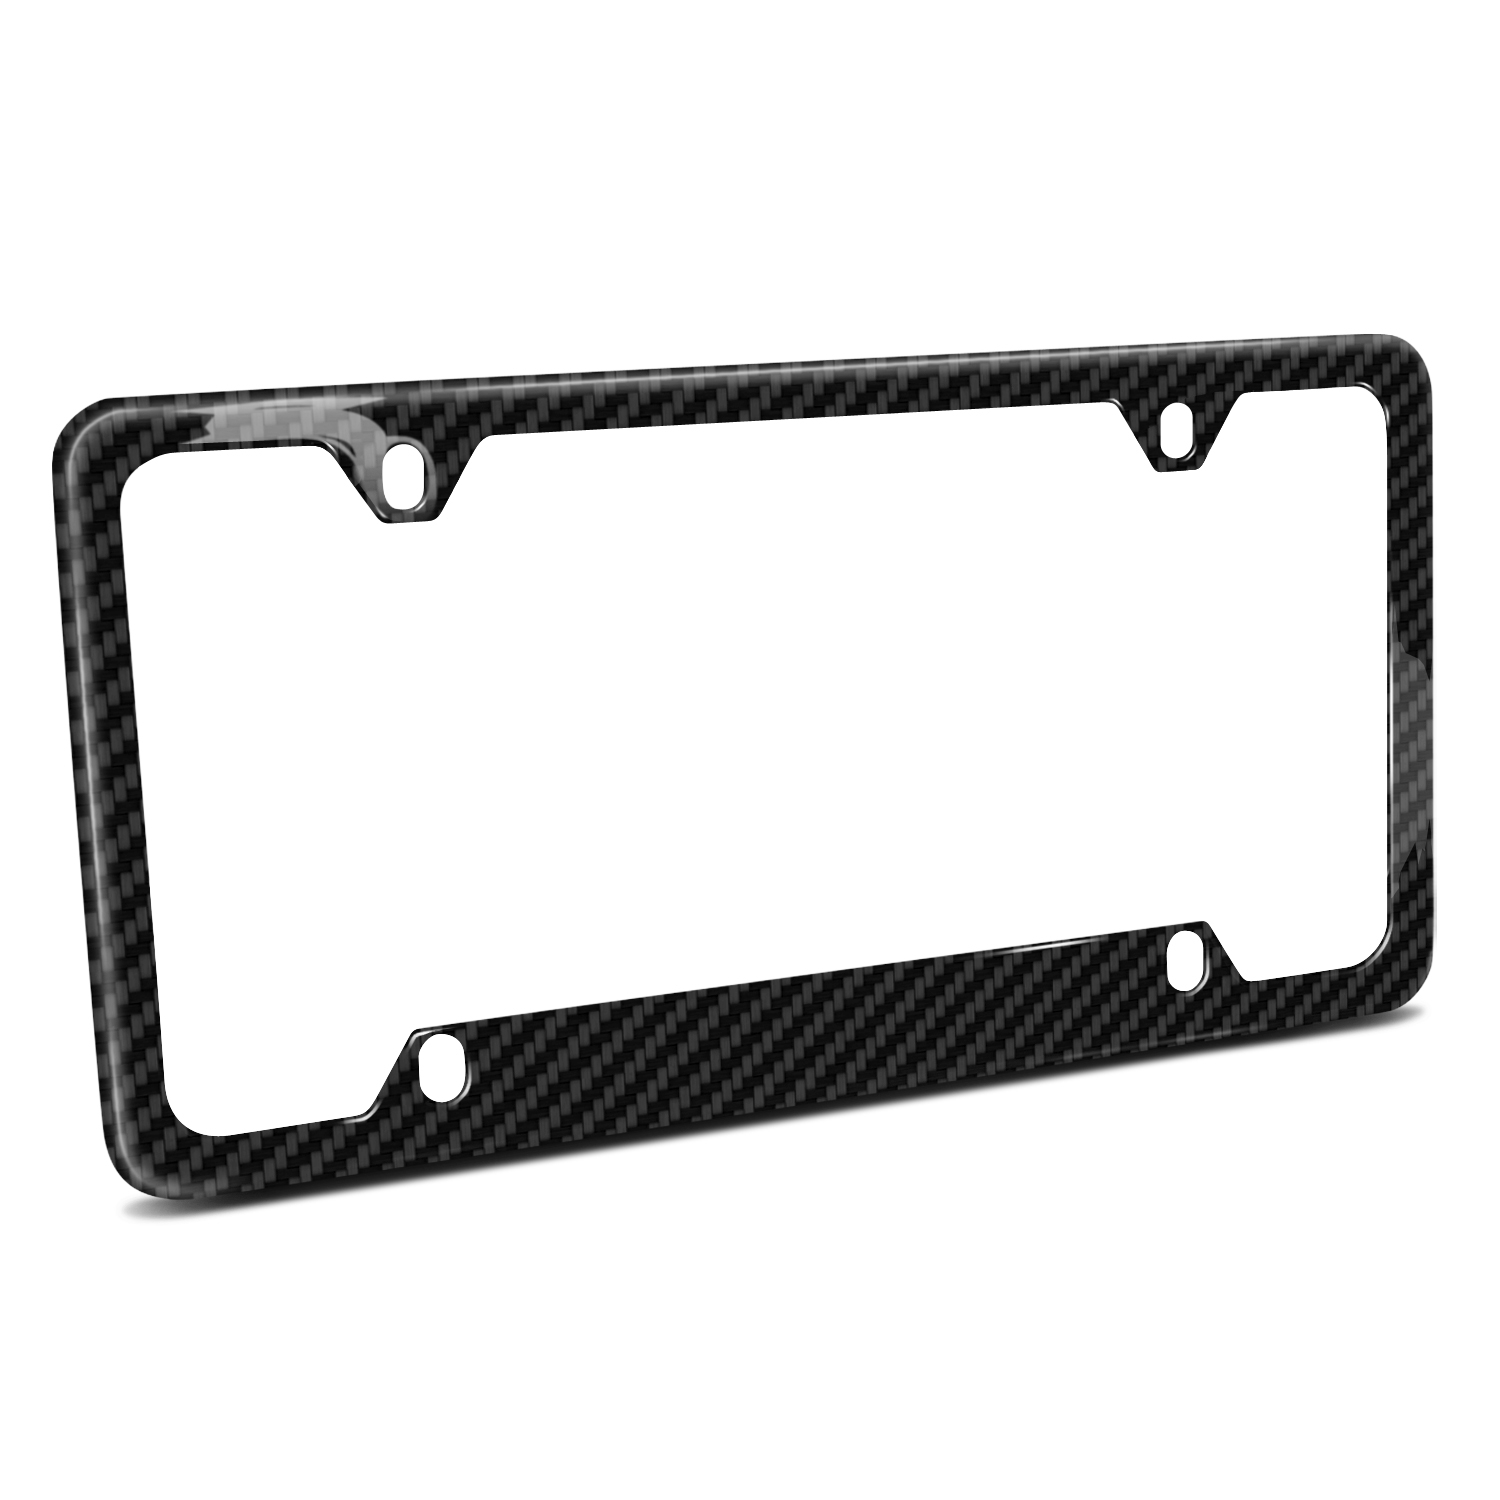 Real Carbon Fiber UV Resistant Glossy Finish 4 Holes 50 States Black License Plate Frame